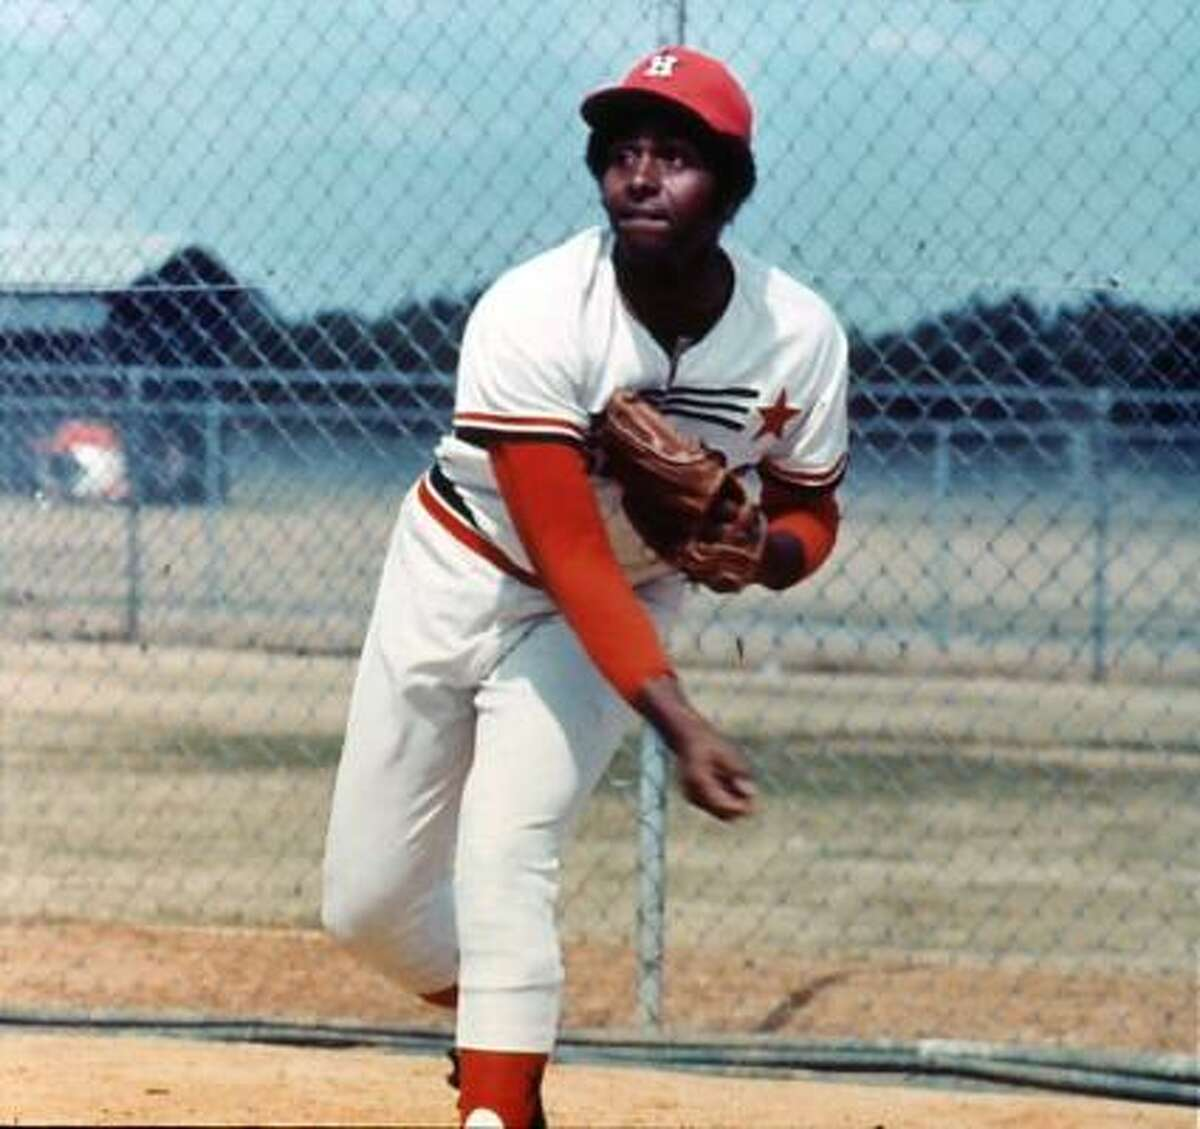 Don Wilson (1) June 18, 1967 at the Astrodome Astros 2, Braves 0 His 15 strikeouts made this one of the most thorough efforts in any no-hitter, and he did it at the age of 22. Wilson struck out Hank Aaron three times including the game-ending K.